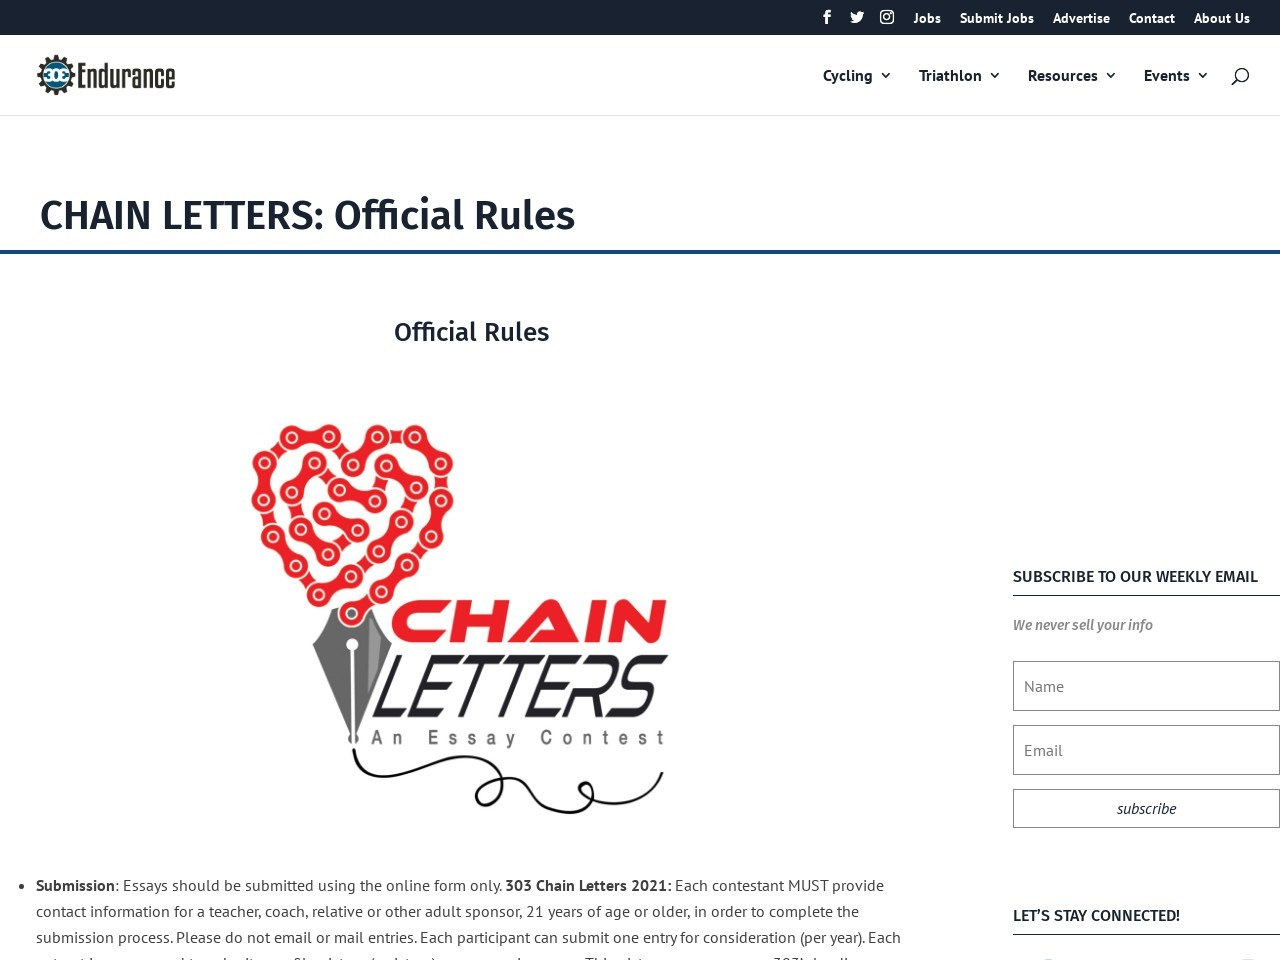 CHAIN LETTERS: Official Rules